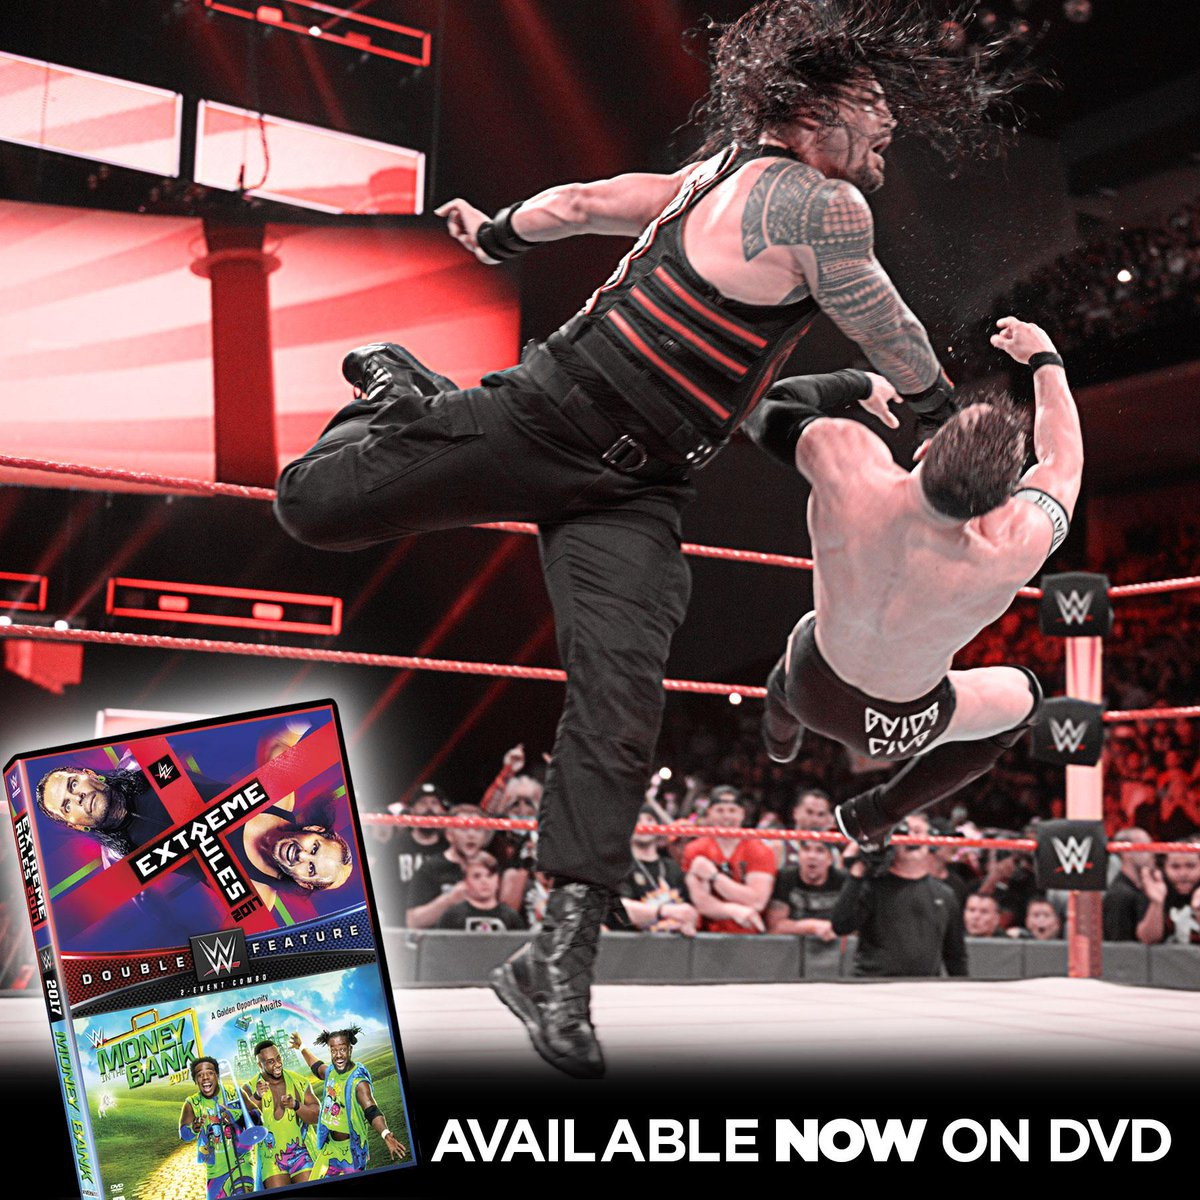 Bring home our newest double feature of @WWE #ExtremeRules & #MITB on DVD TODAY!